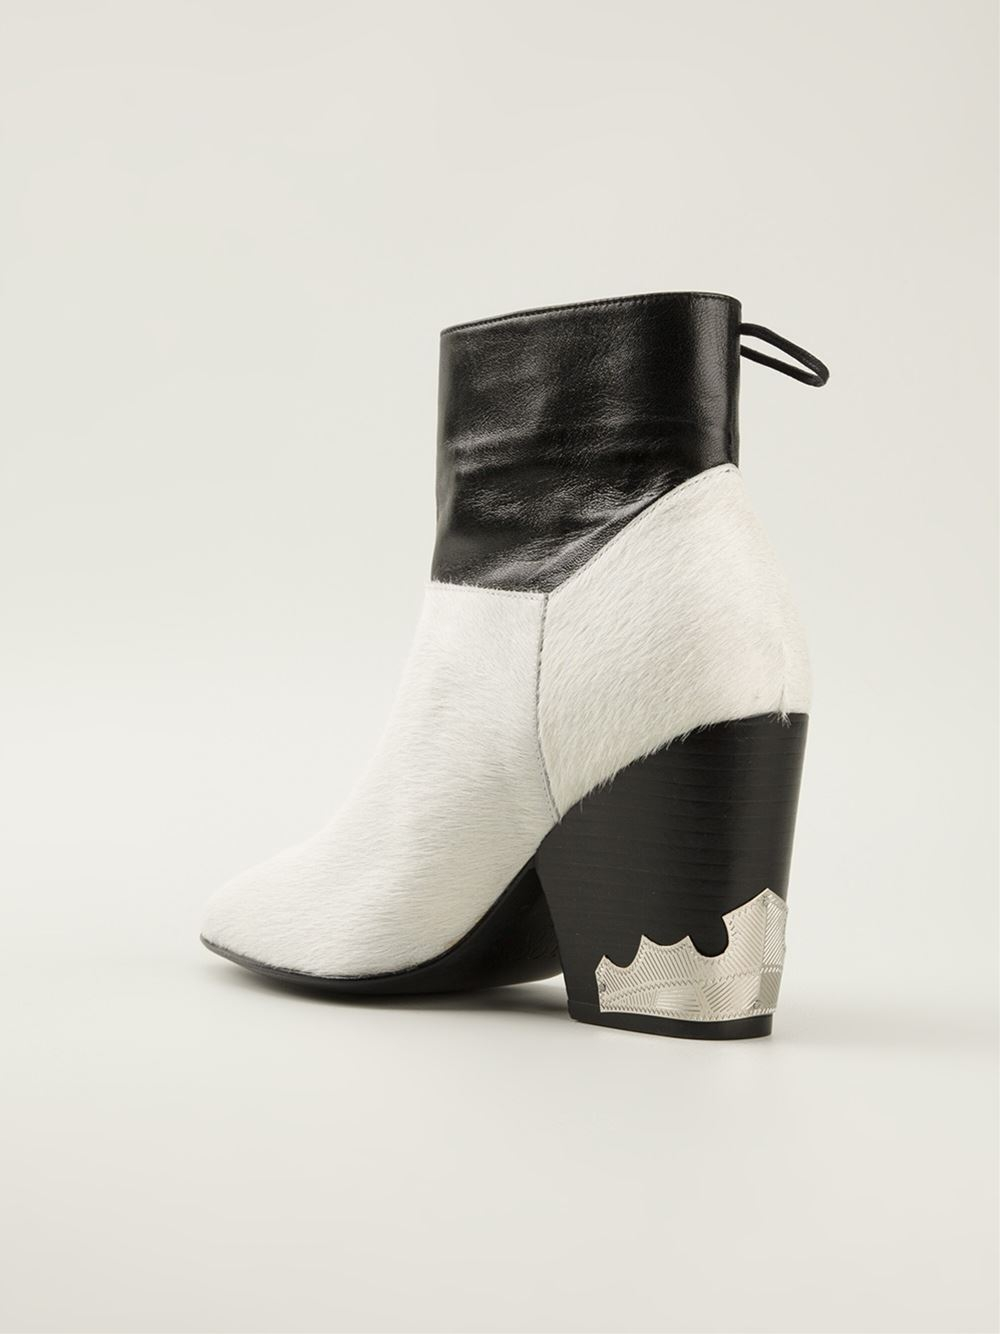 Toga Monochrome Ankle Boots in Black